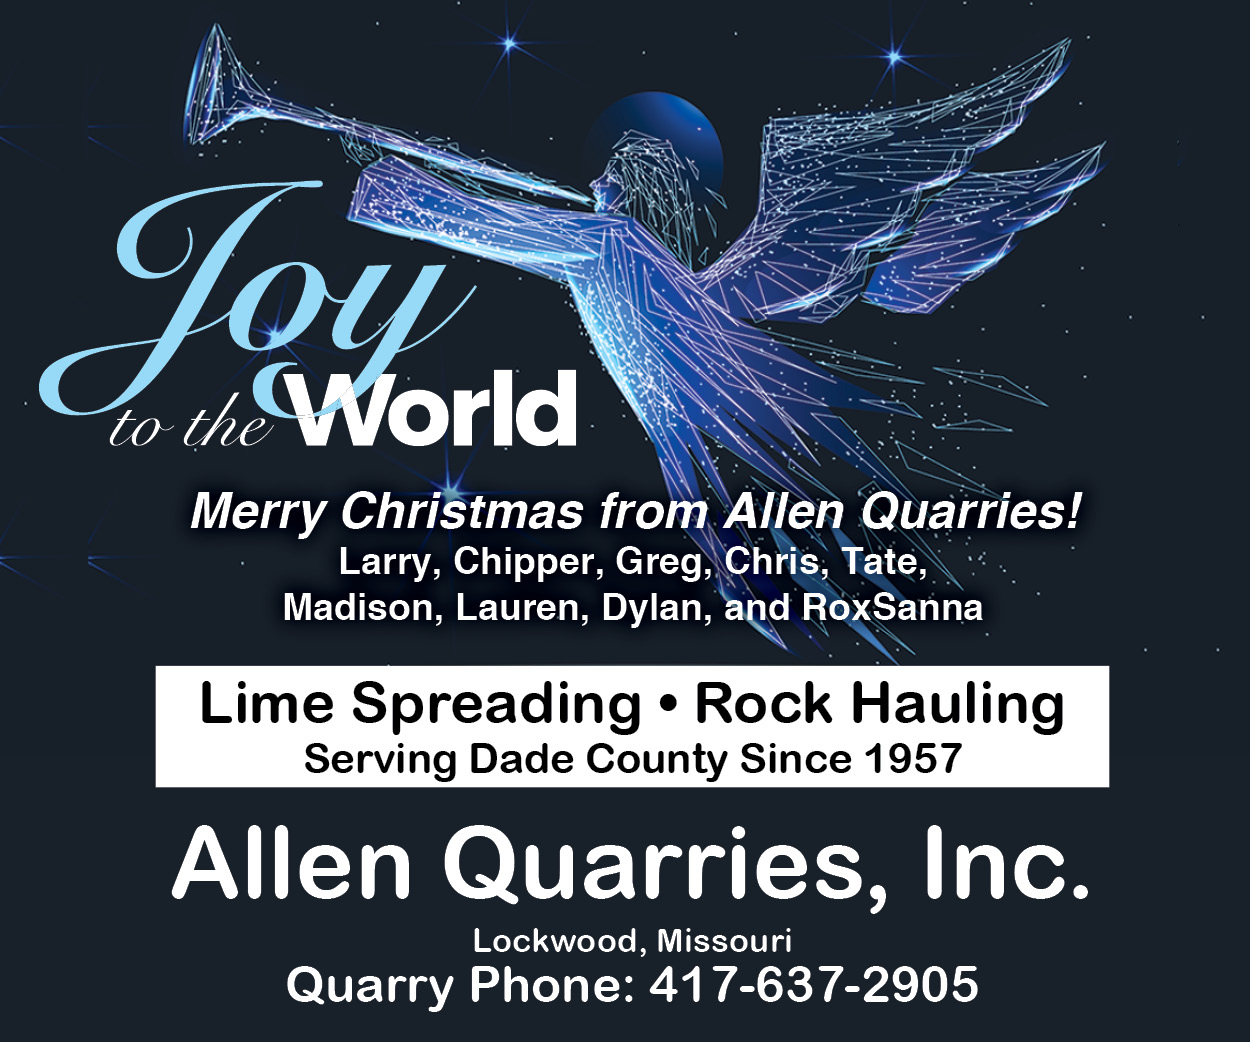 Allen Quarries Greeting 2019